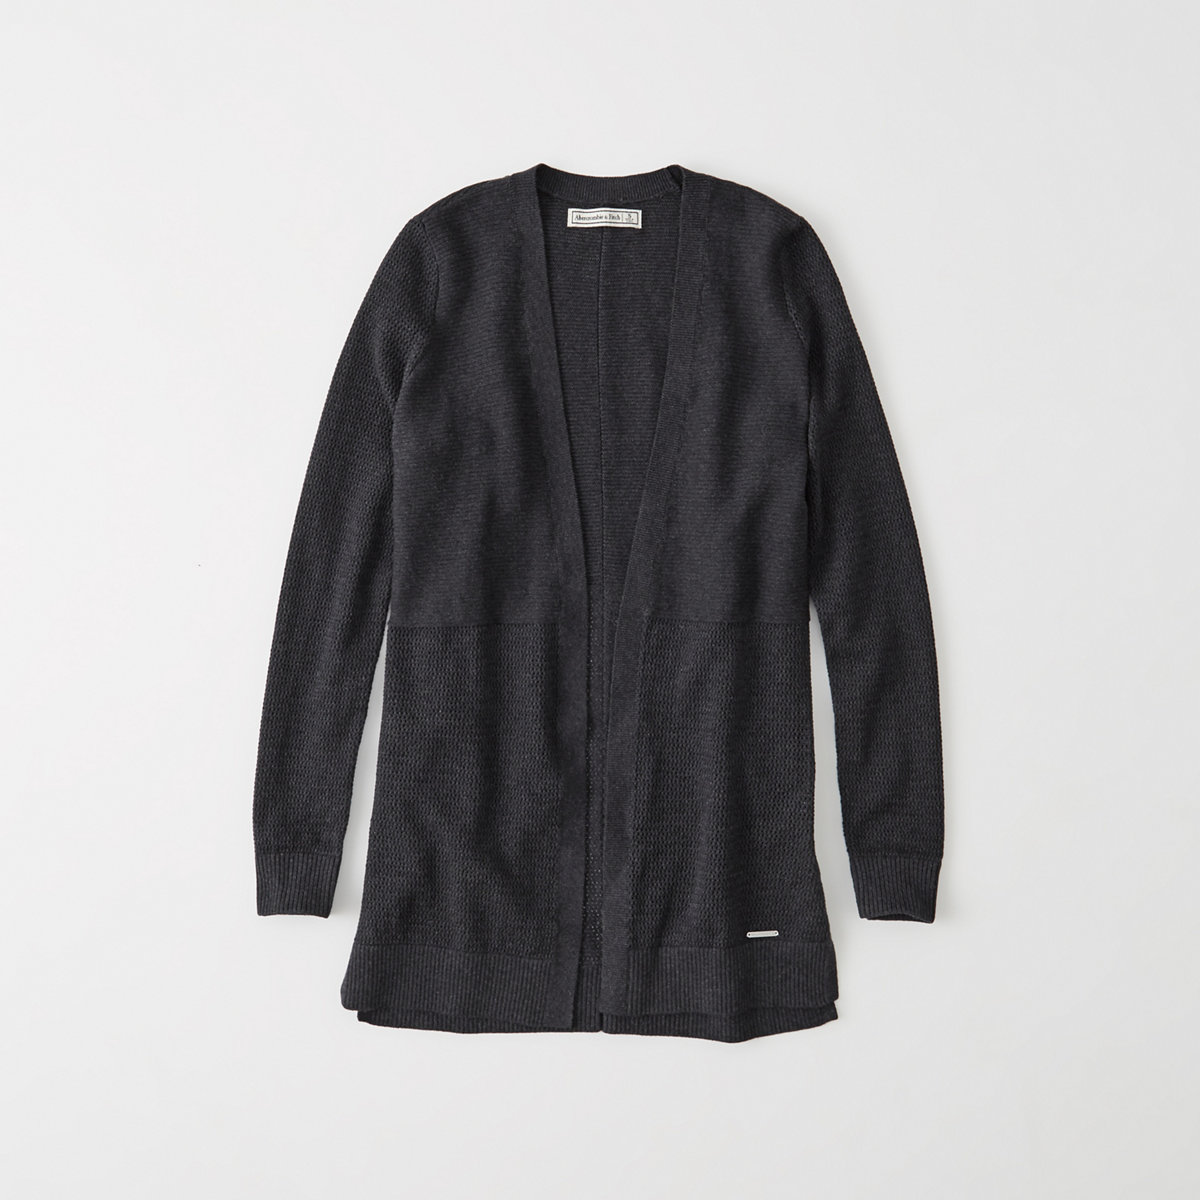 Stitched Duster Cardigan